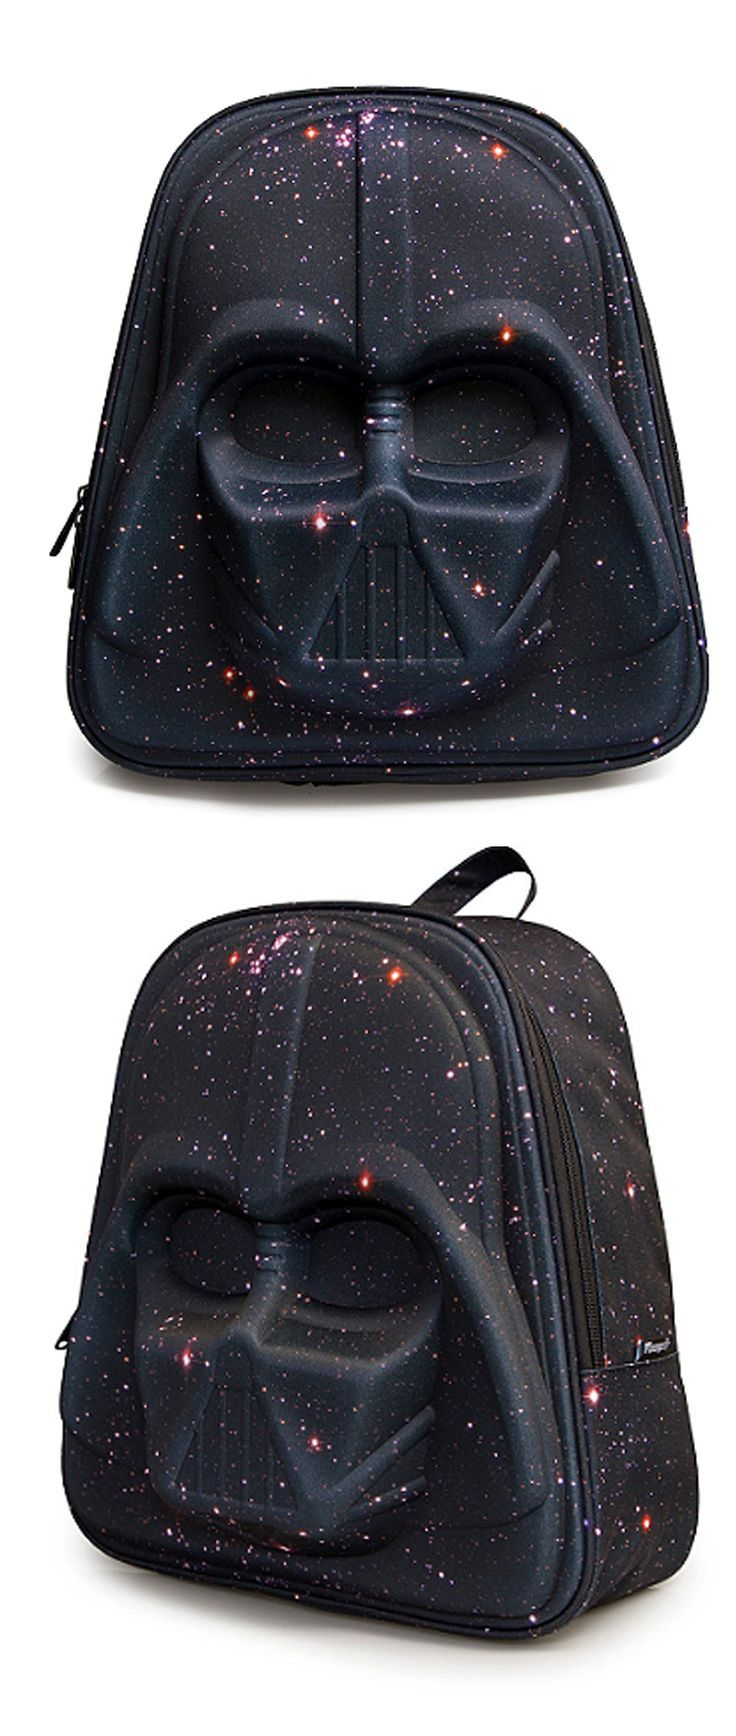 Star Wars and galaxy prints fan? You gotta have this then.  See it here==>  http://gwyl.io/loungefly-darth-vader-backpack/